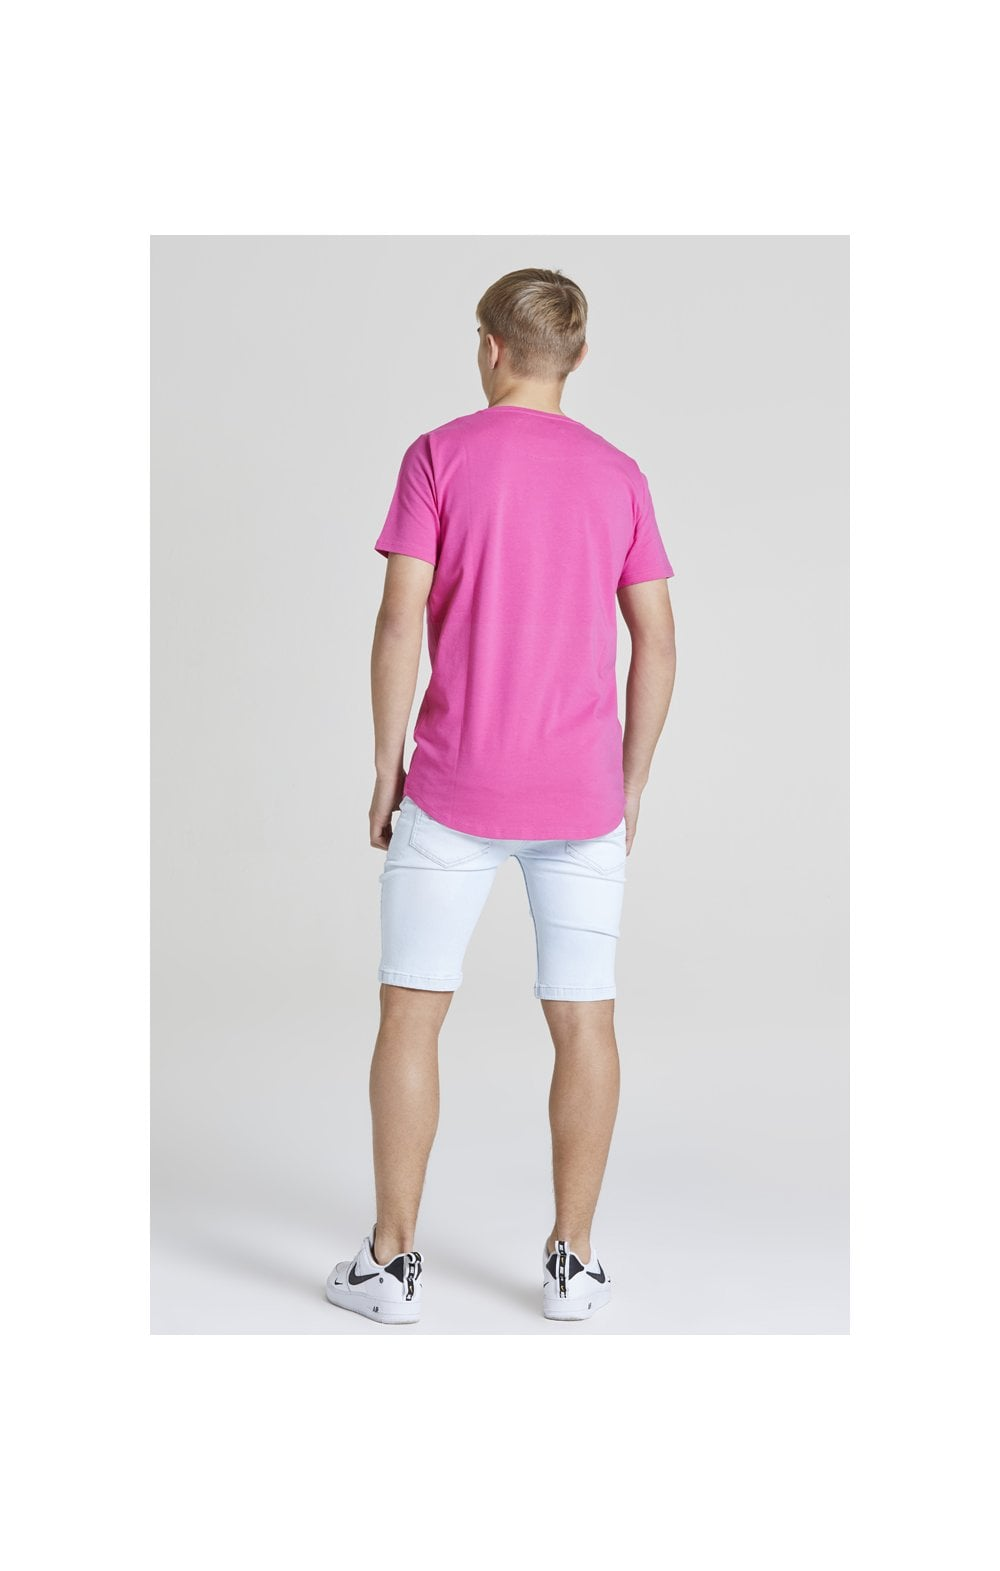 Illusive London Core Tee - Pink (4)